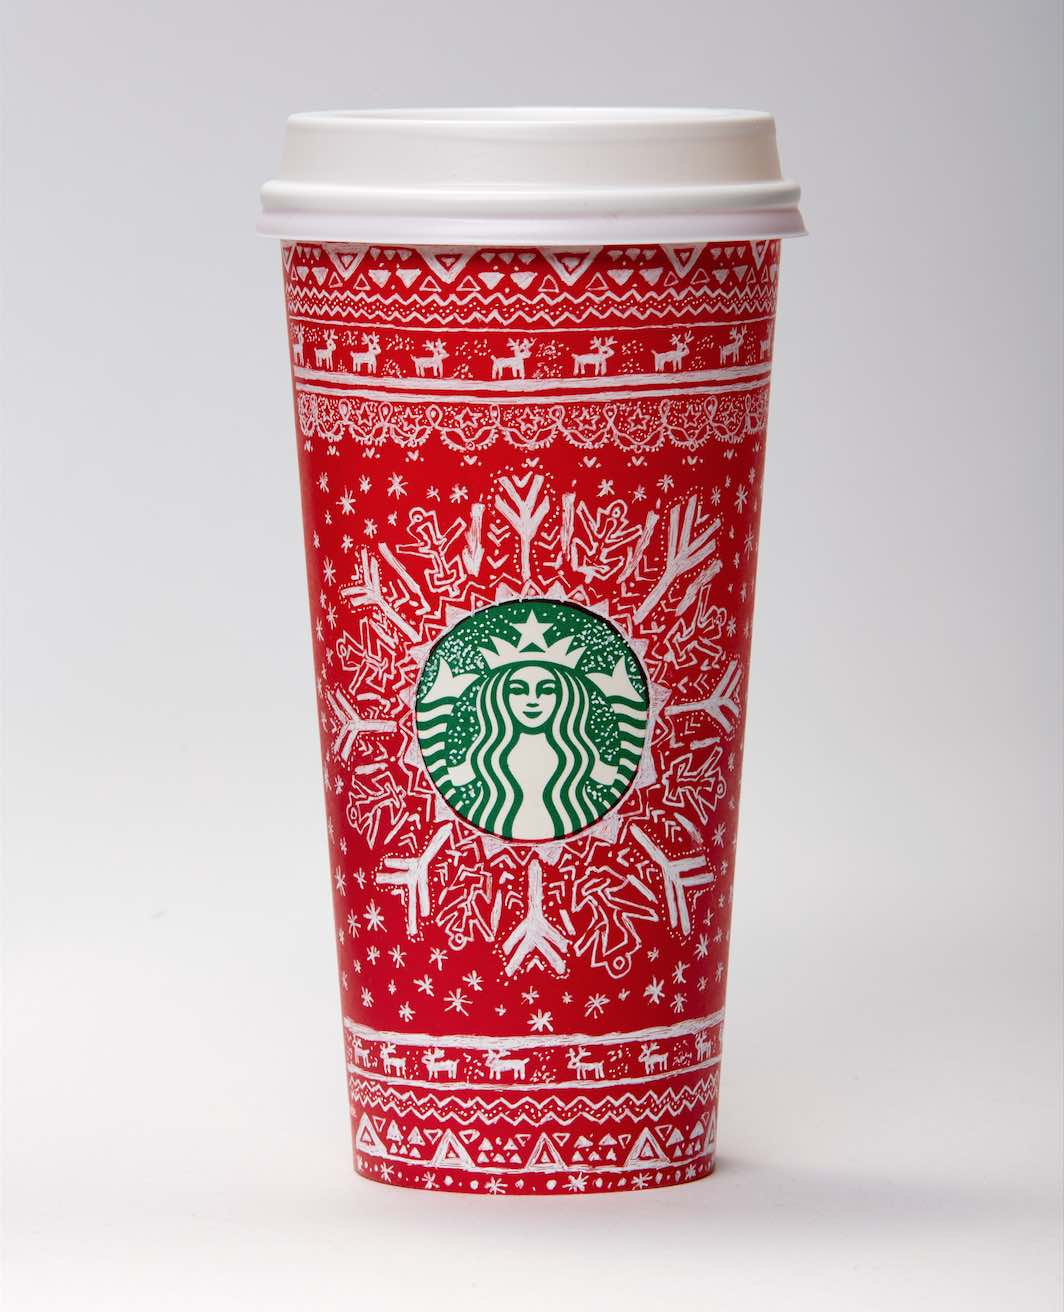 starbucks-snowflake-sweater-by-alisa-st-petersburg-russia-aspirantsg